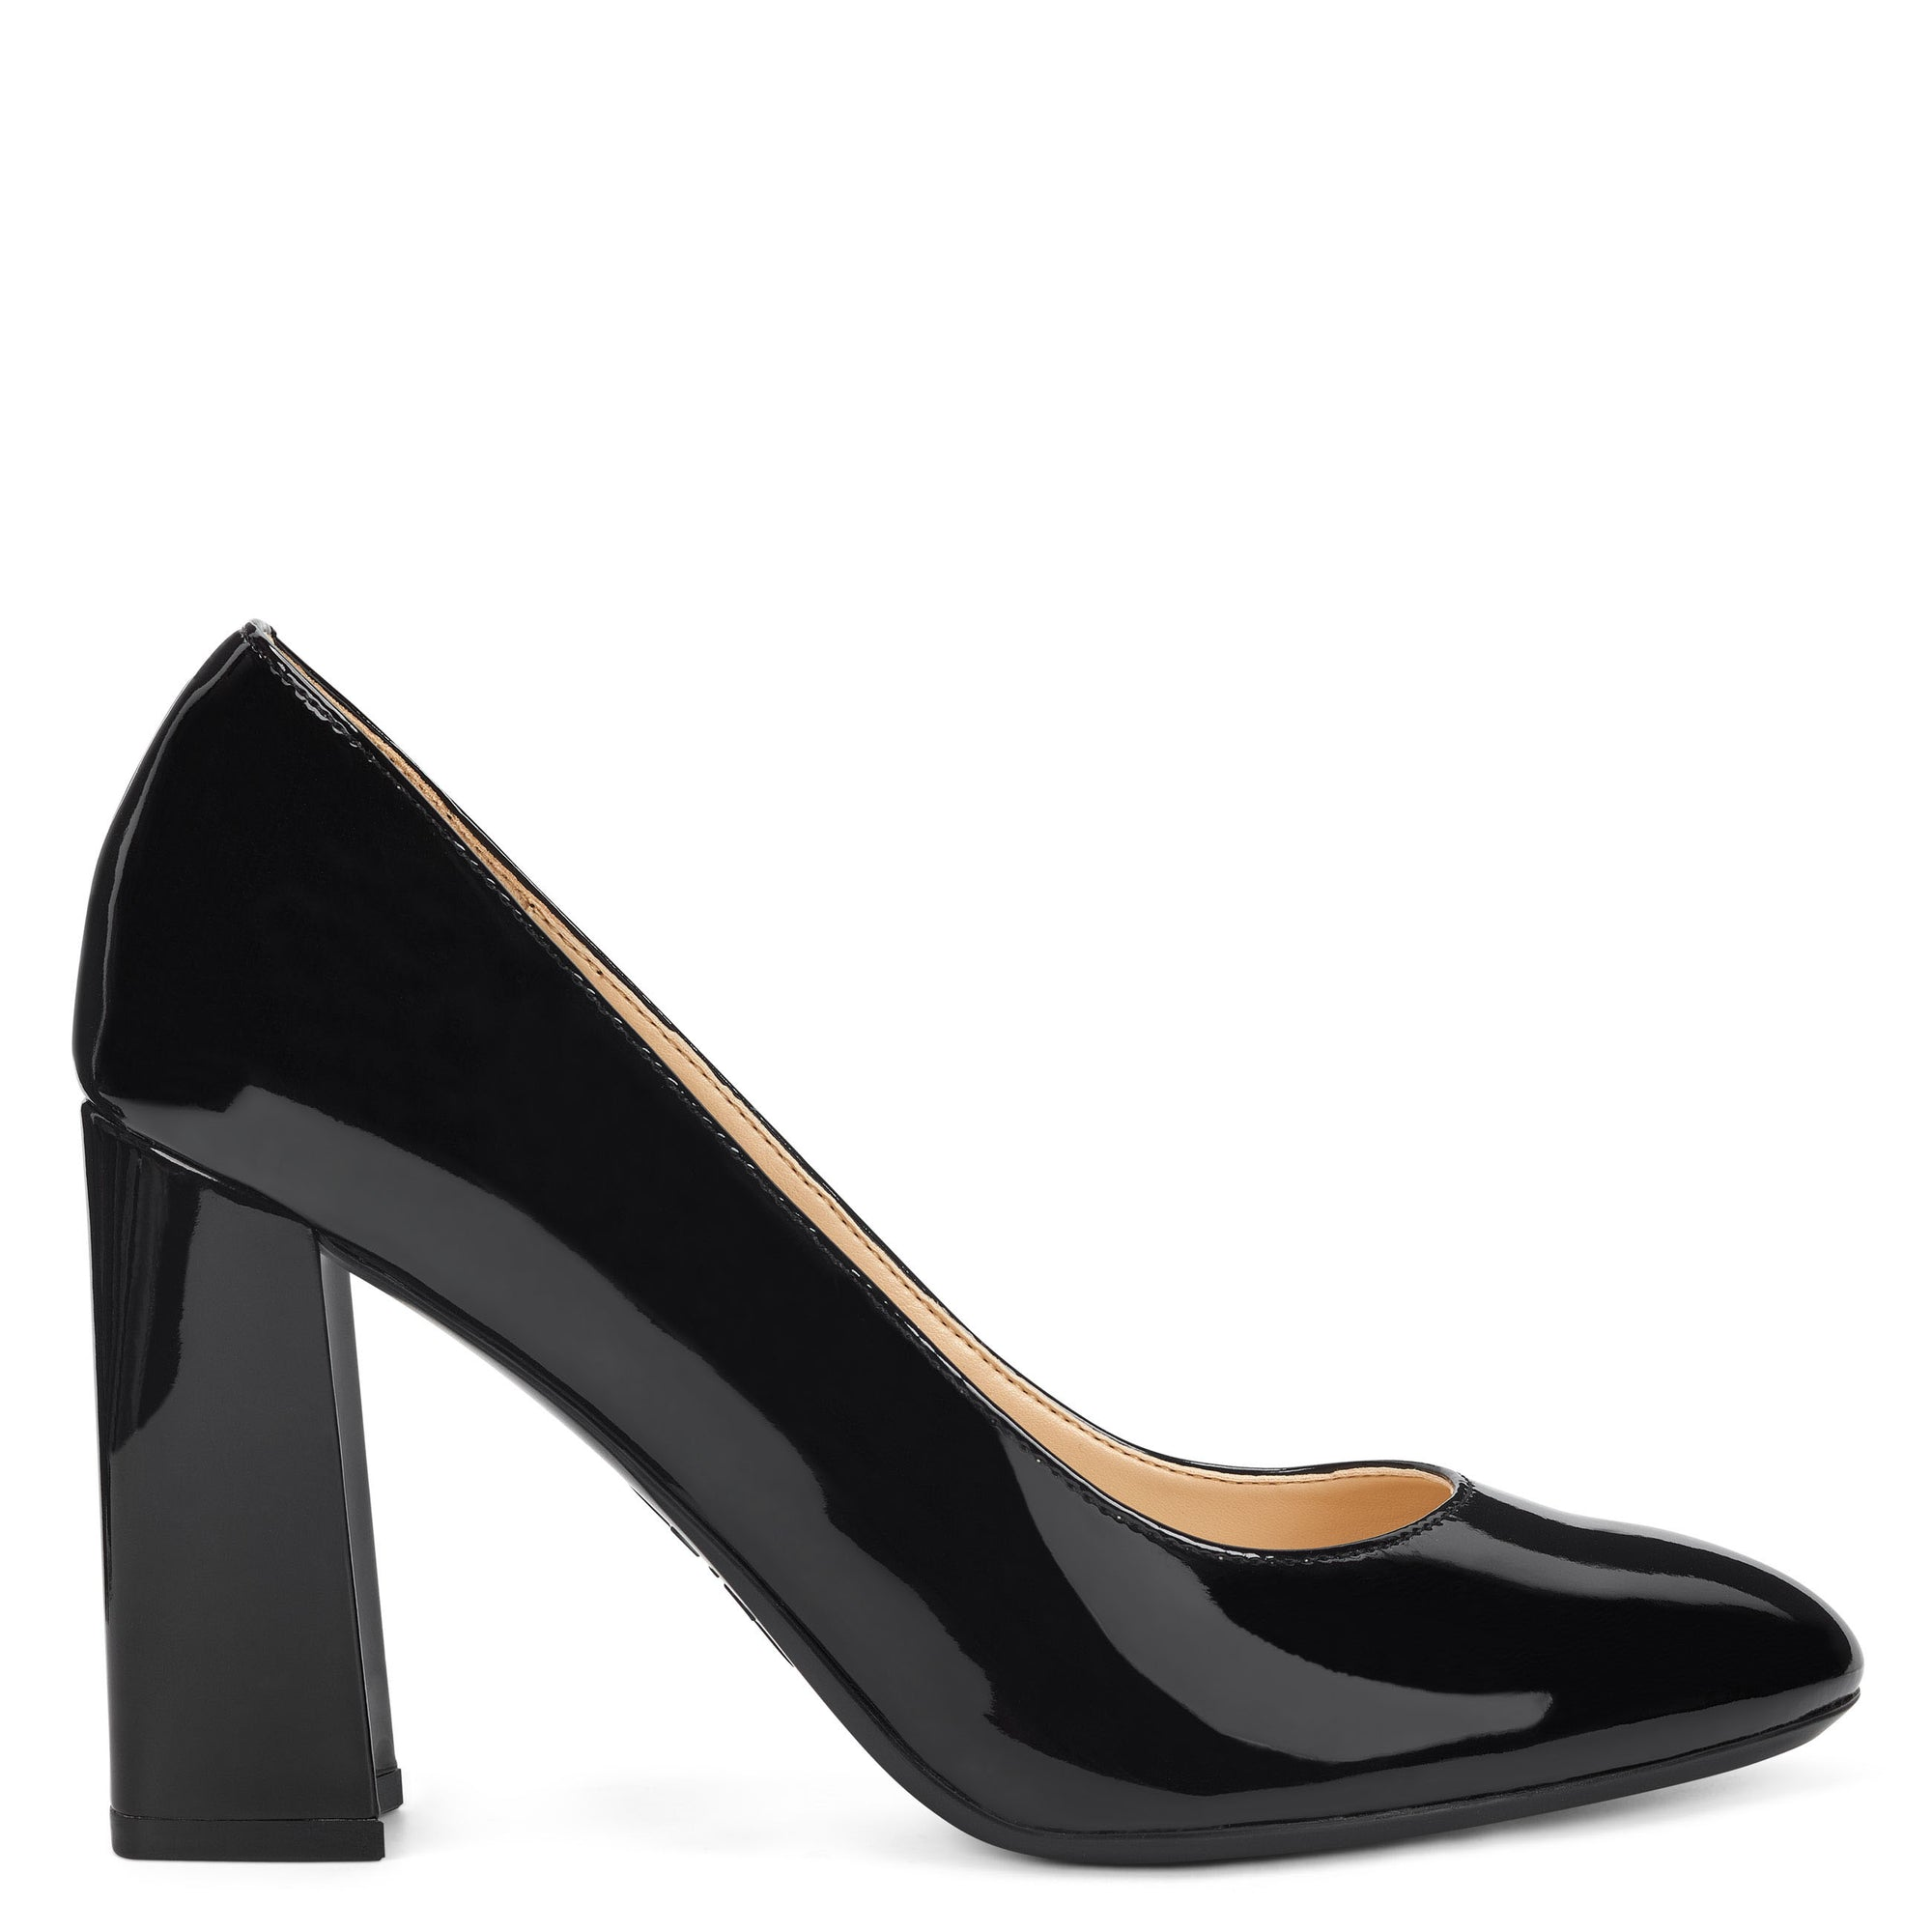 arya-block-heel-pumps-in-black